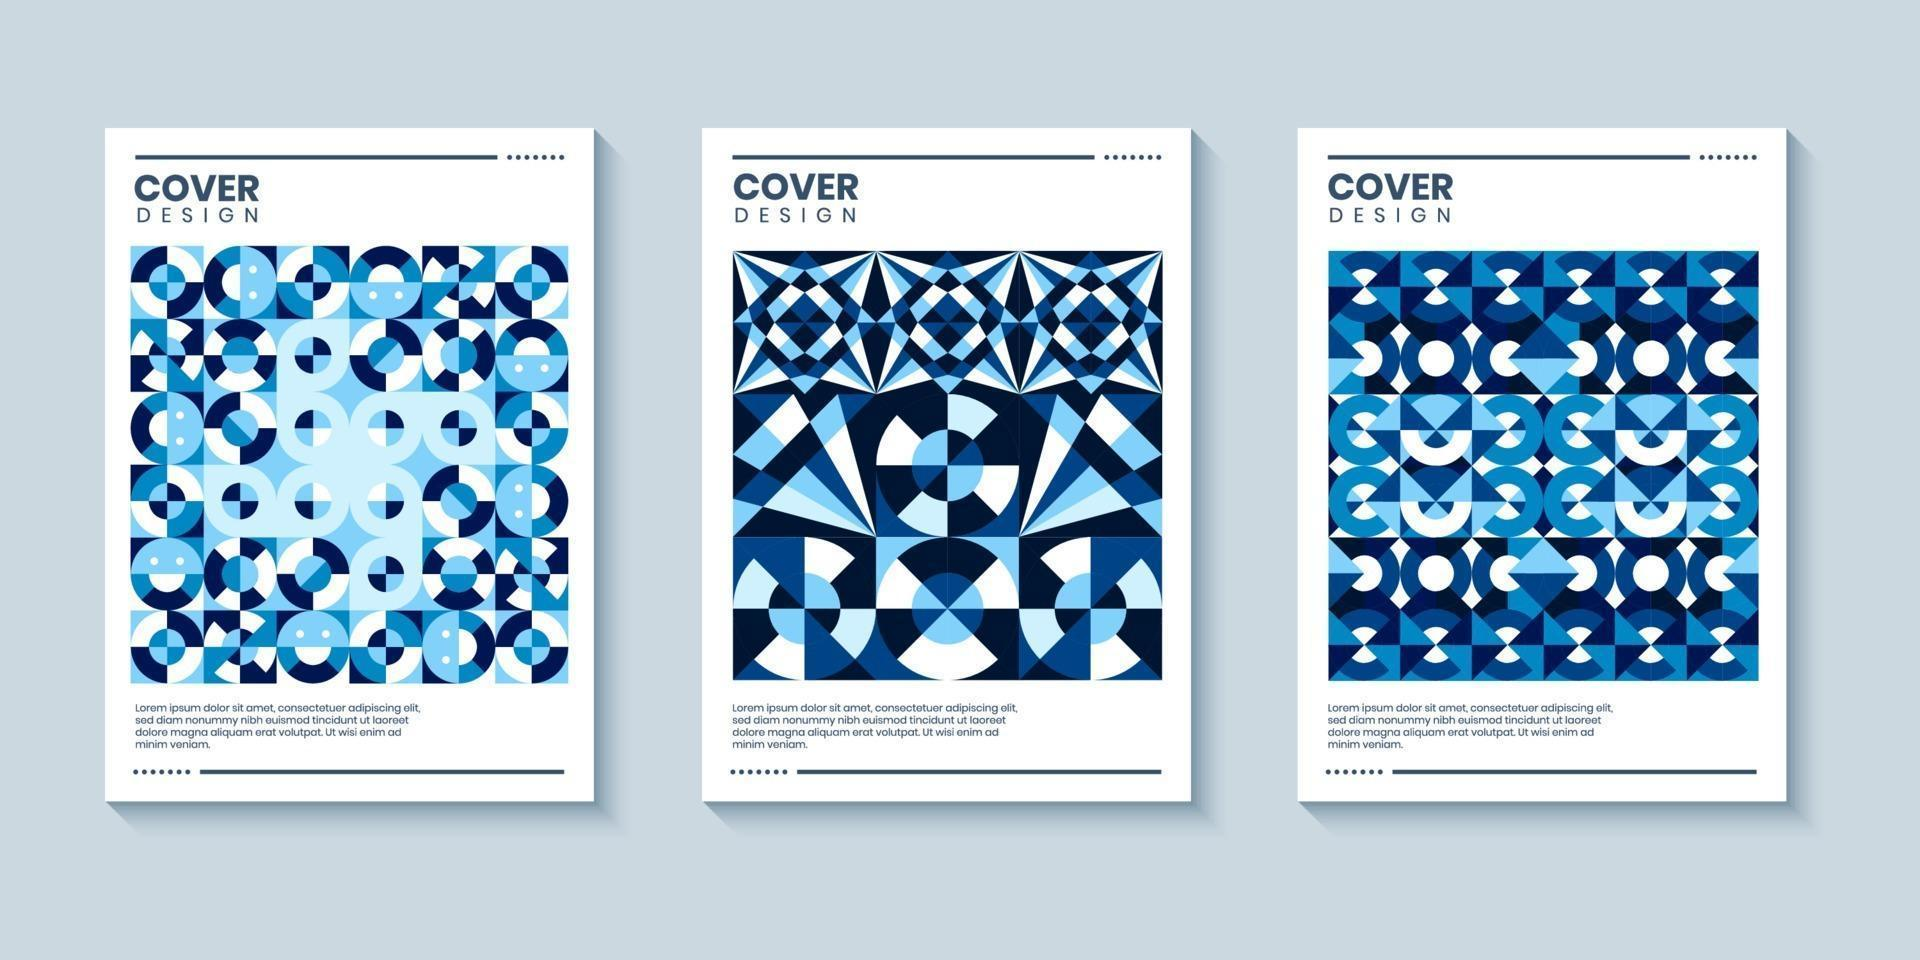 Geometric pop art style cover background for book cover or poster vector